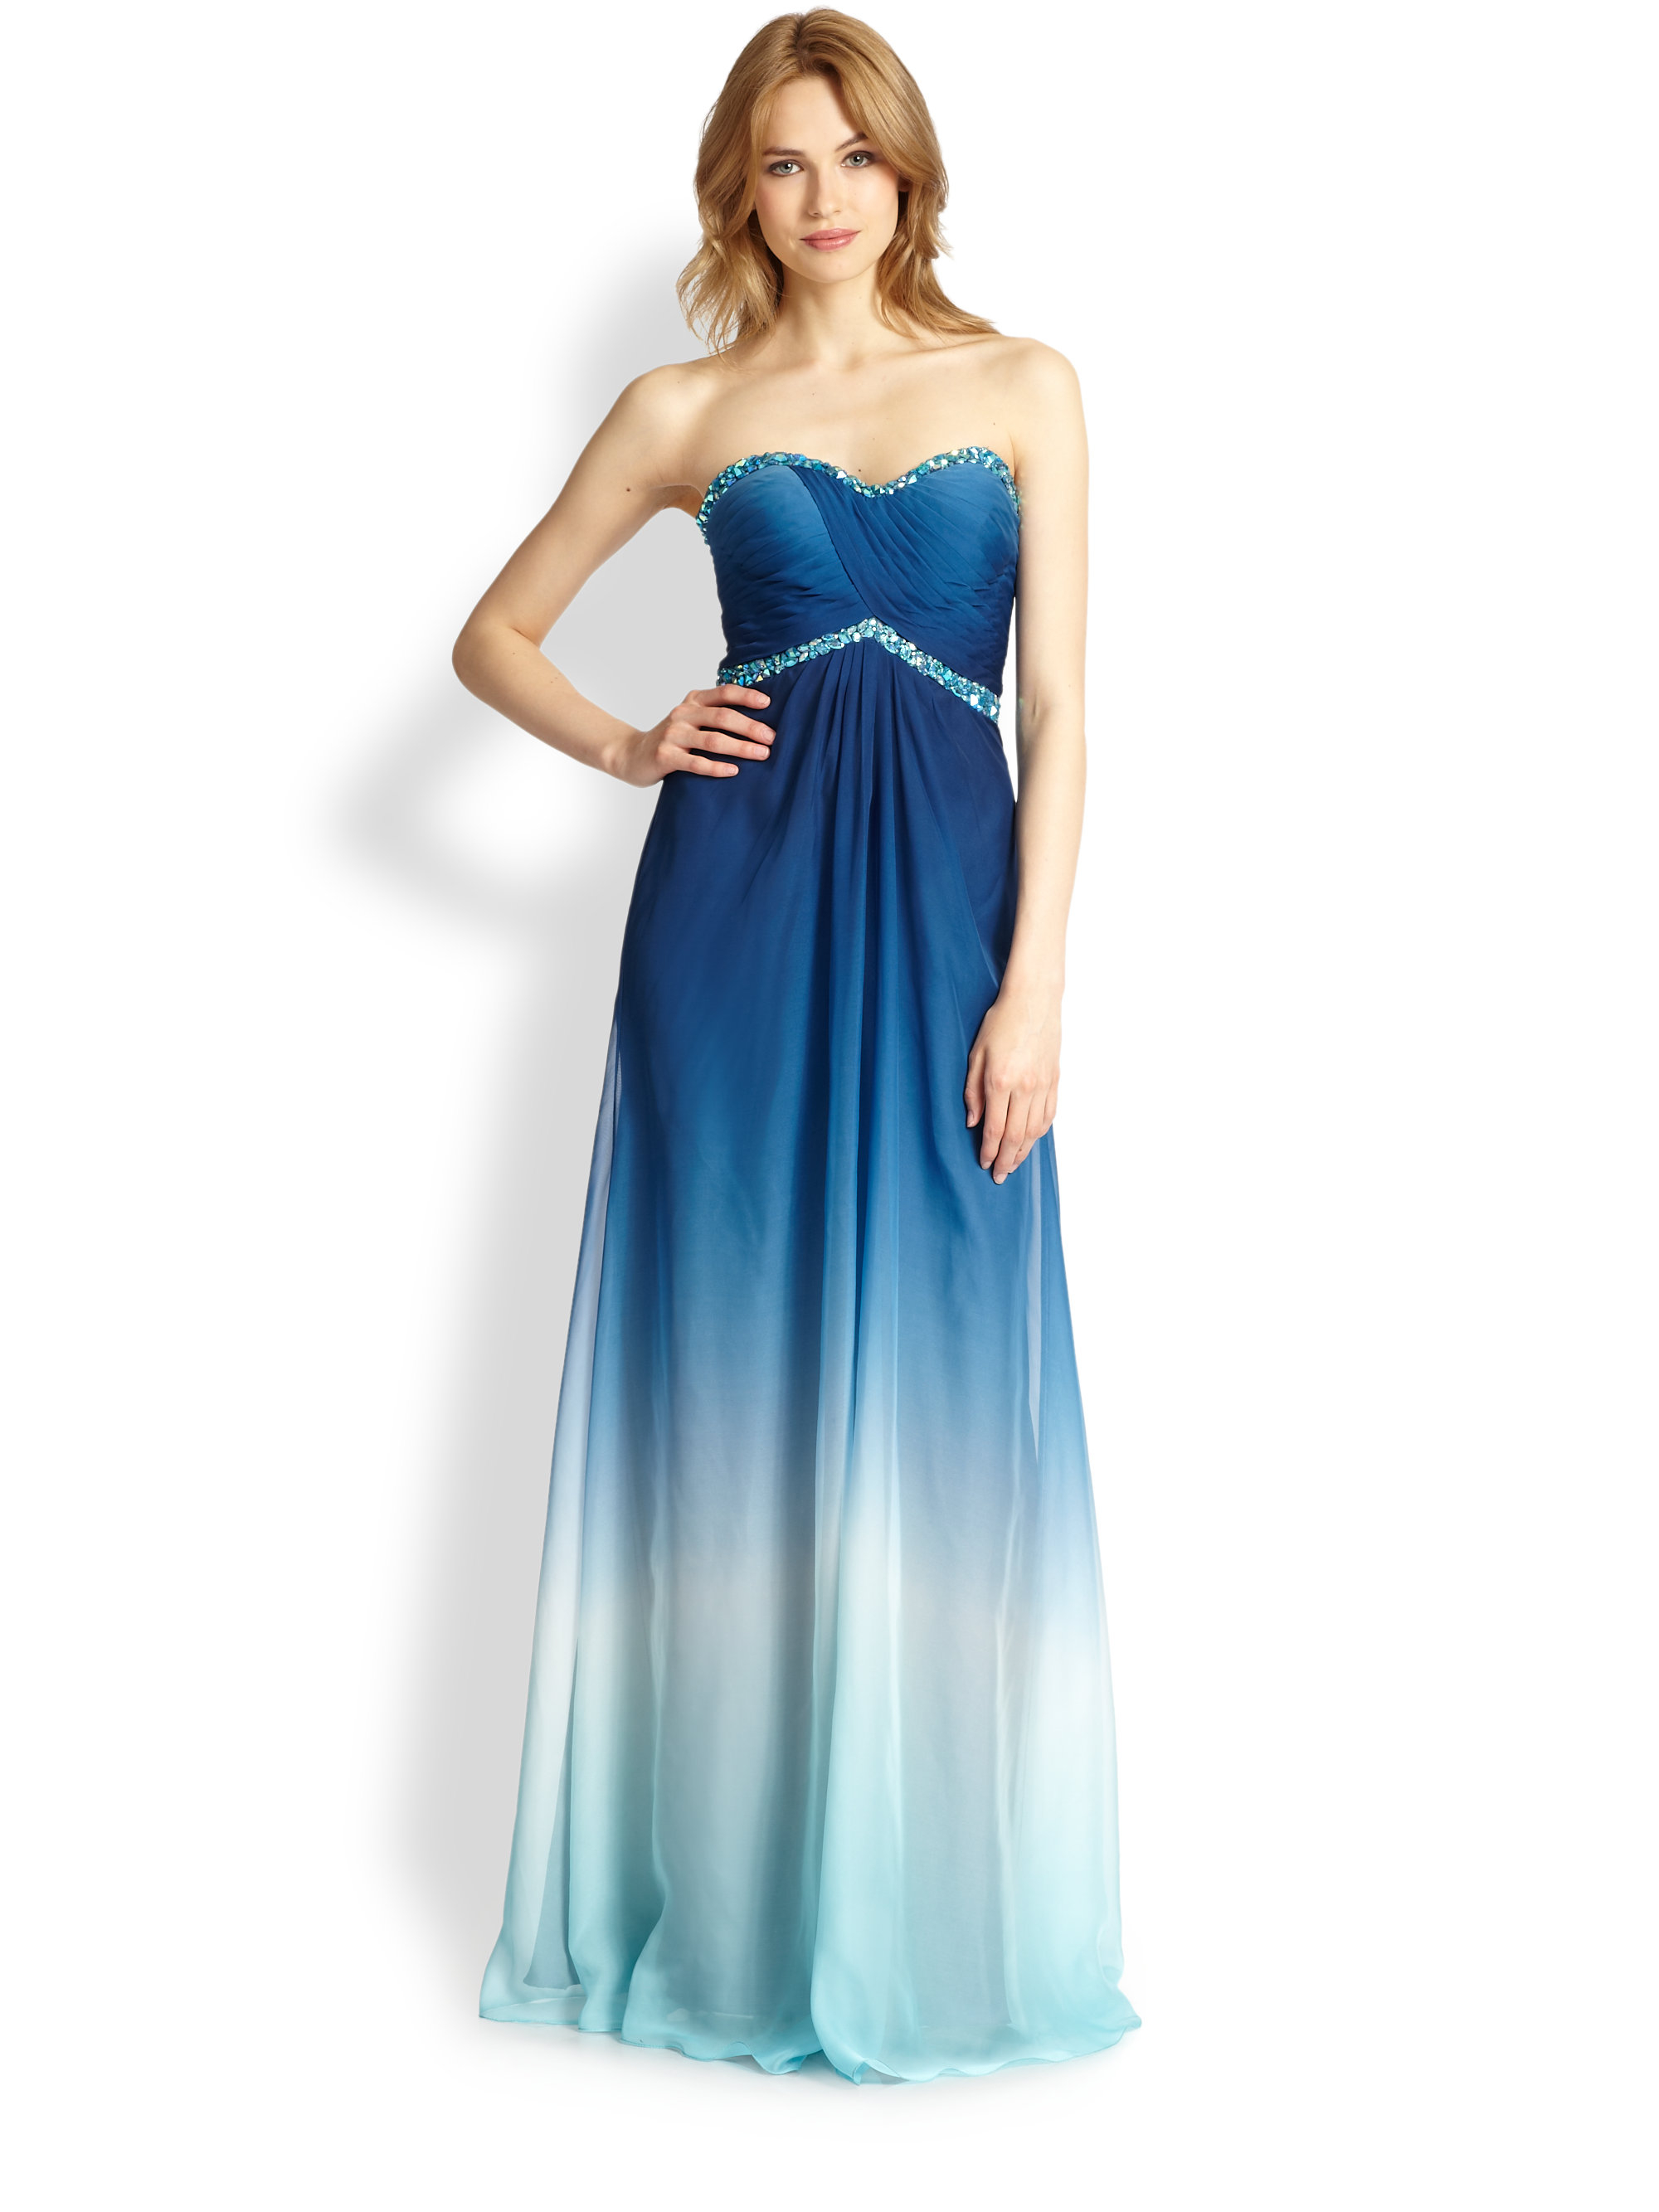 Famous Saks Fifth Avenue Prom Dresses Component - All Wedding ...